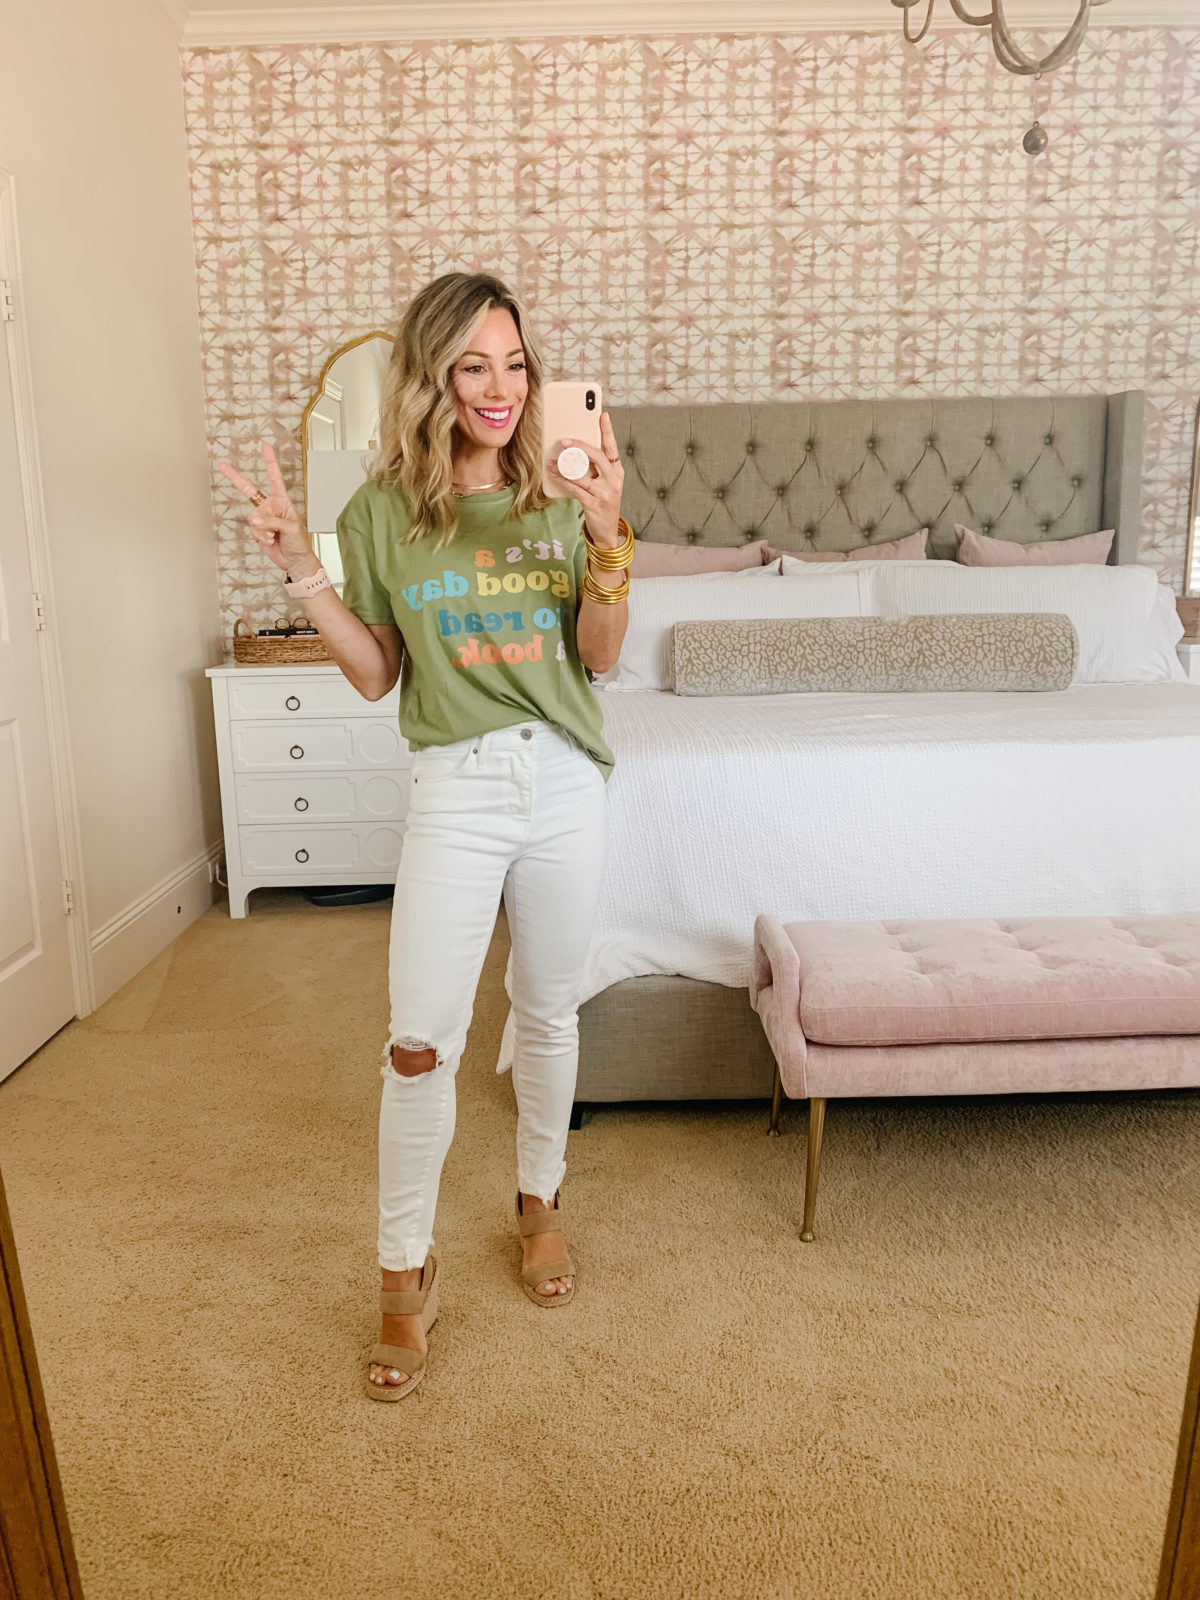 Amazon Fashion Faves, Graphic Tee and White Jeans with Wedges